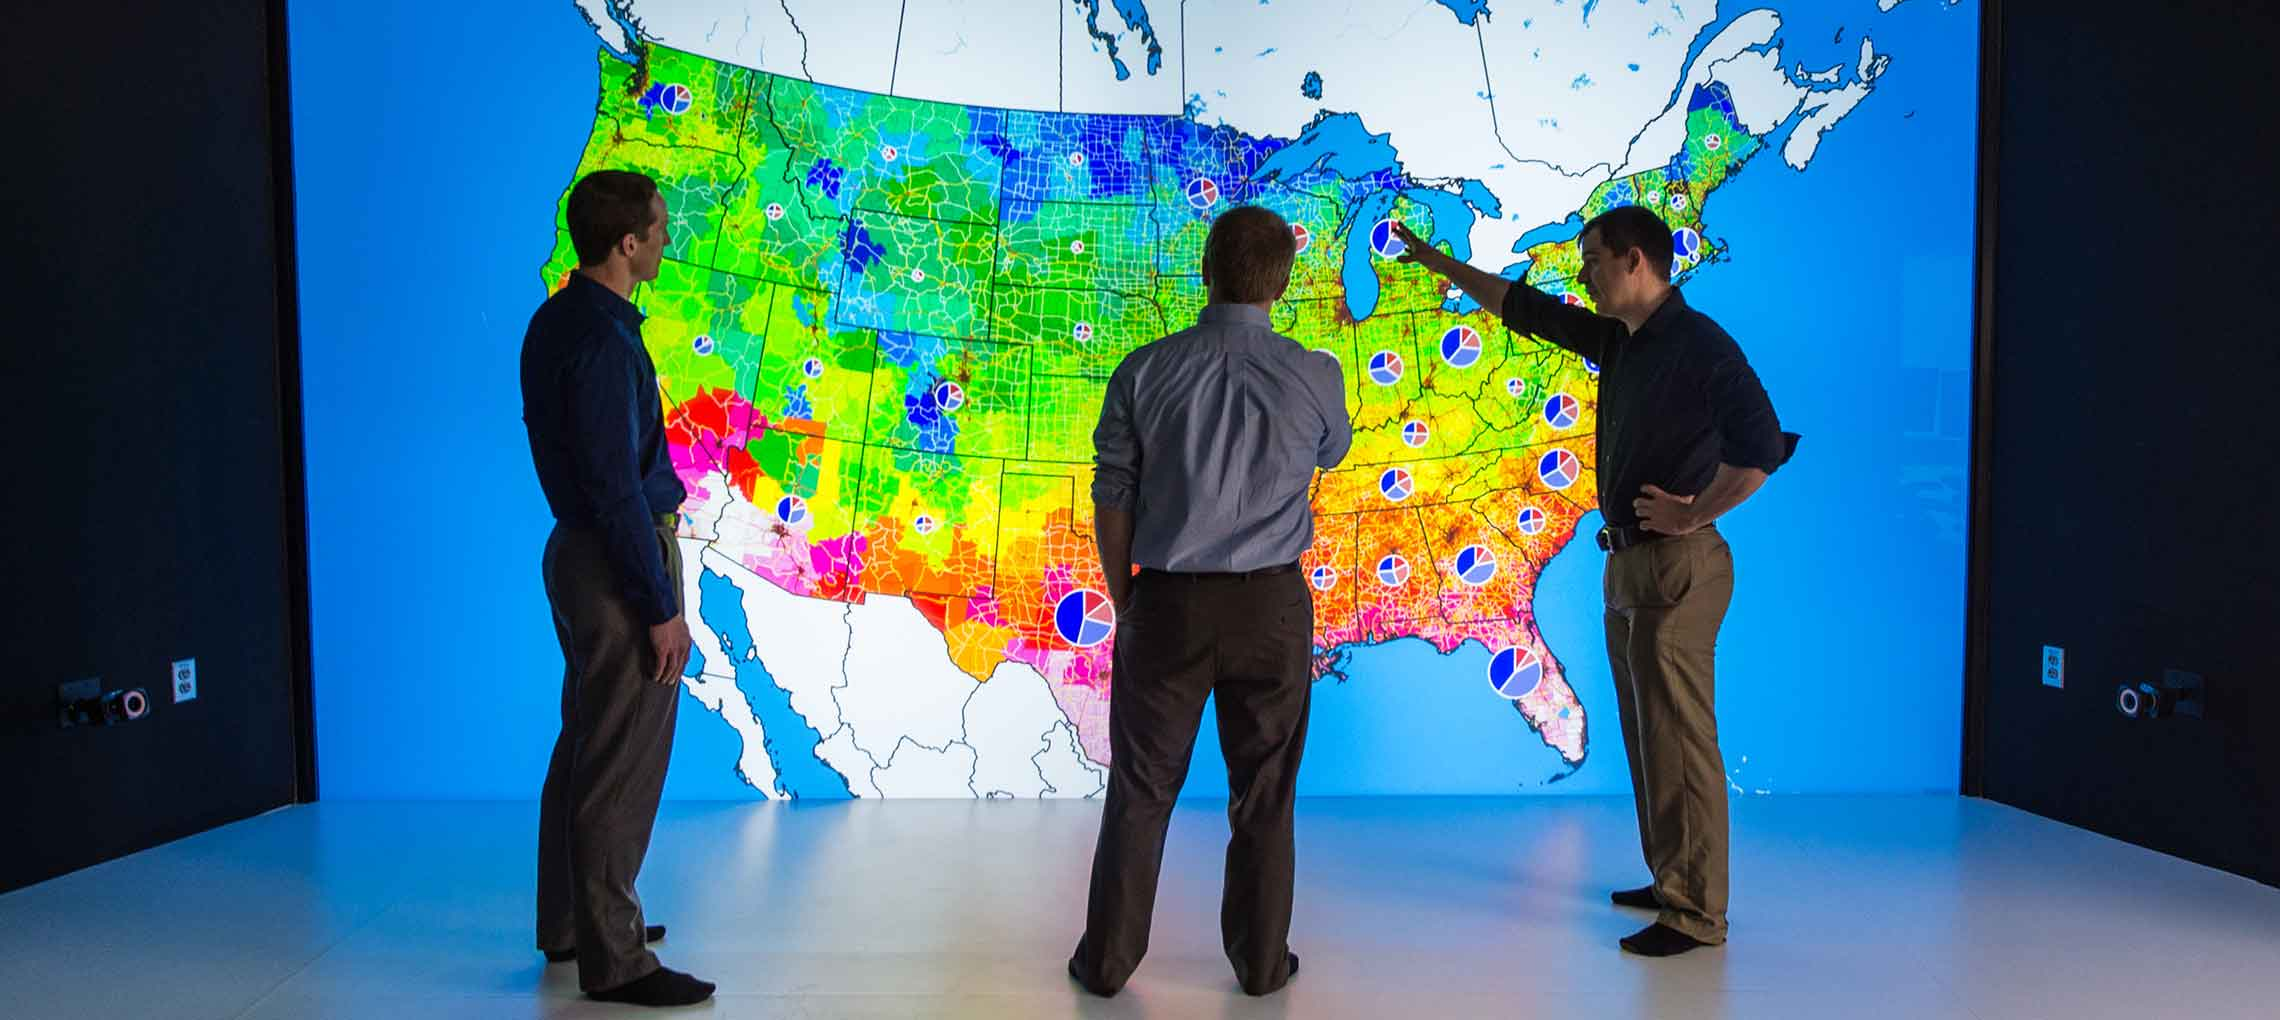 NREL researchers look at colored map of the United States in 3D visualization room.